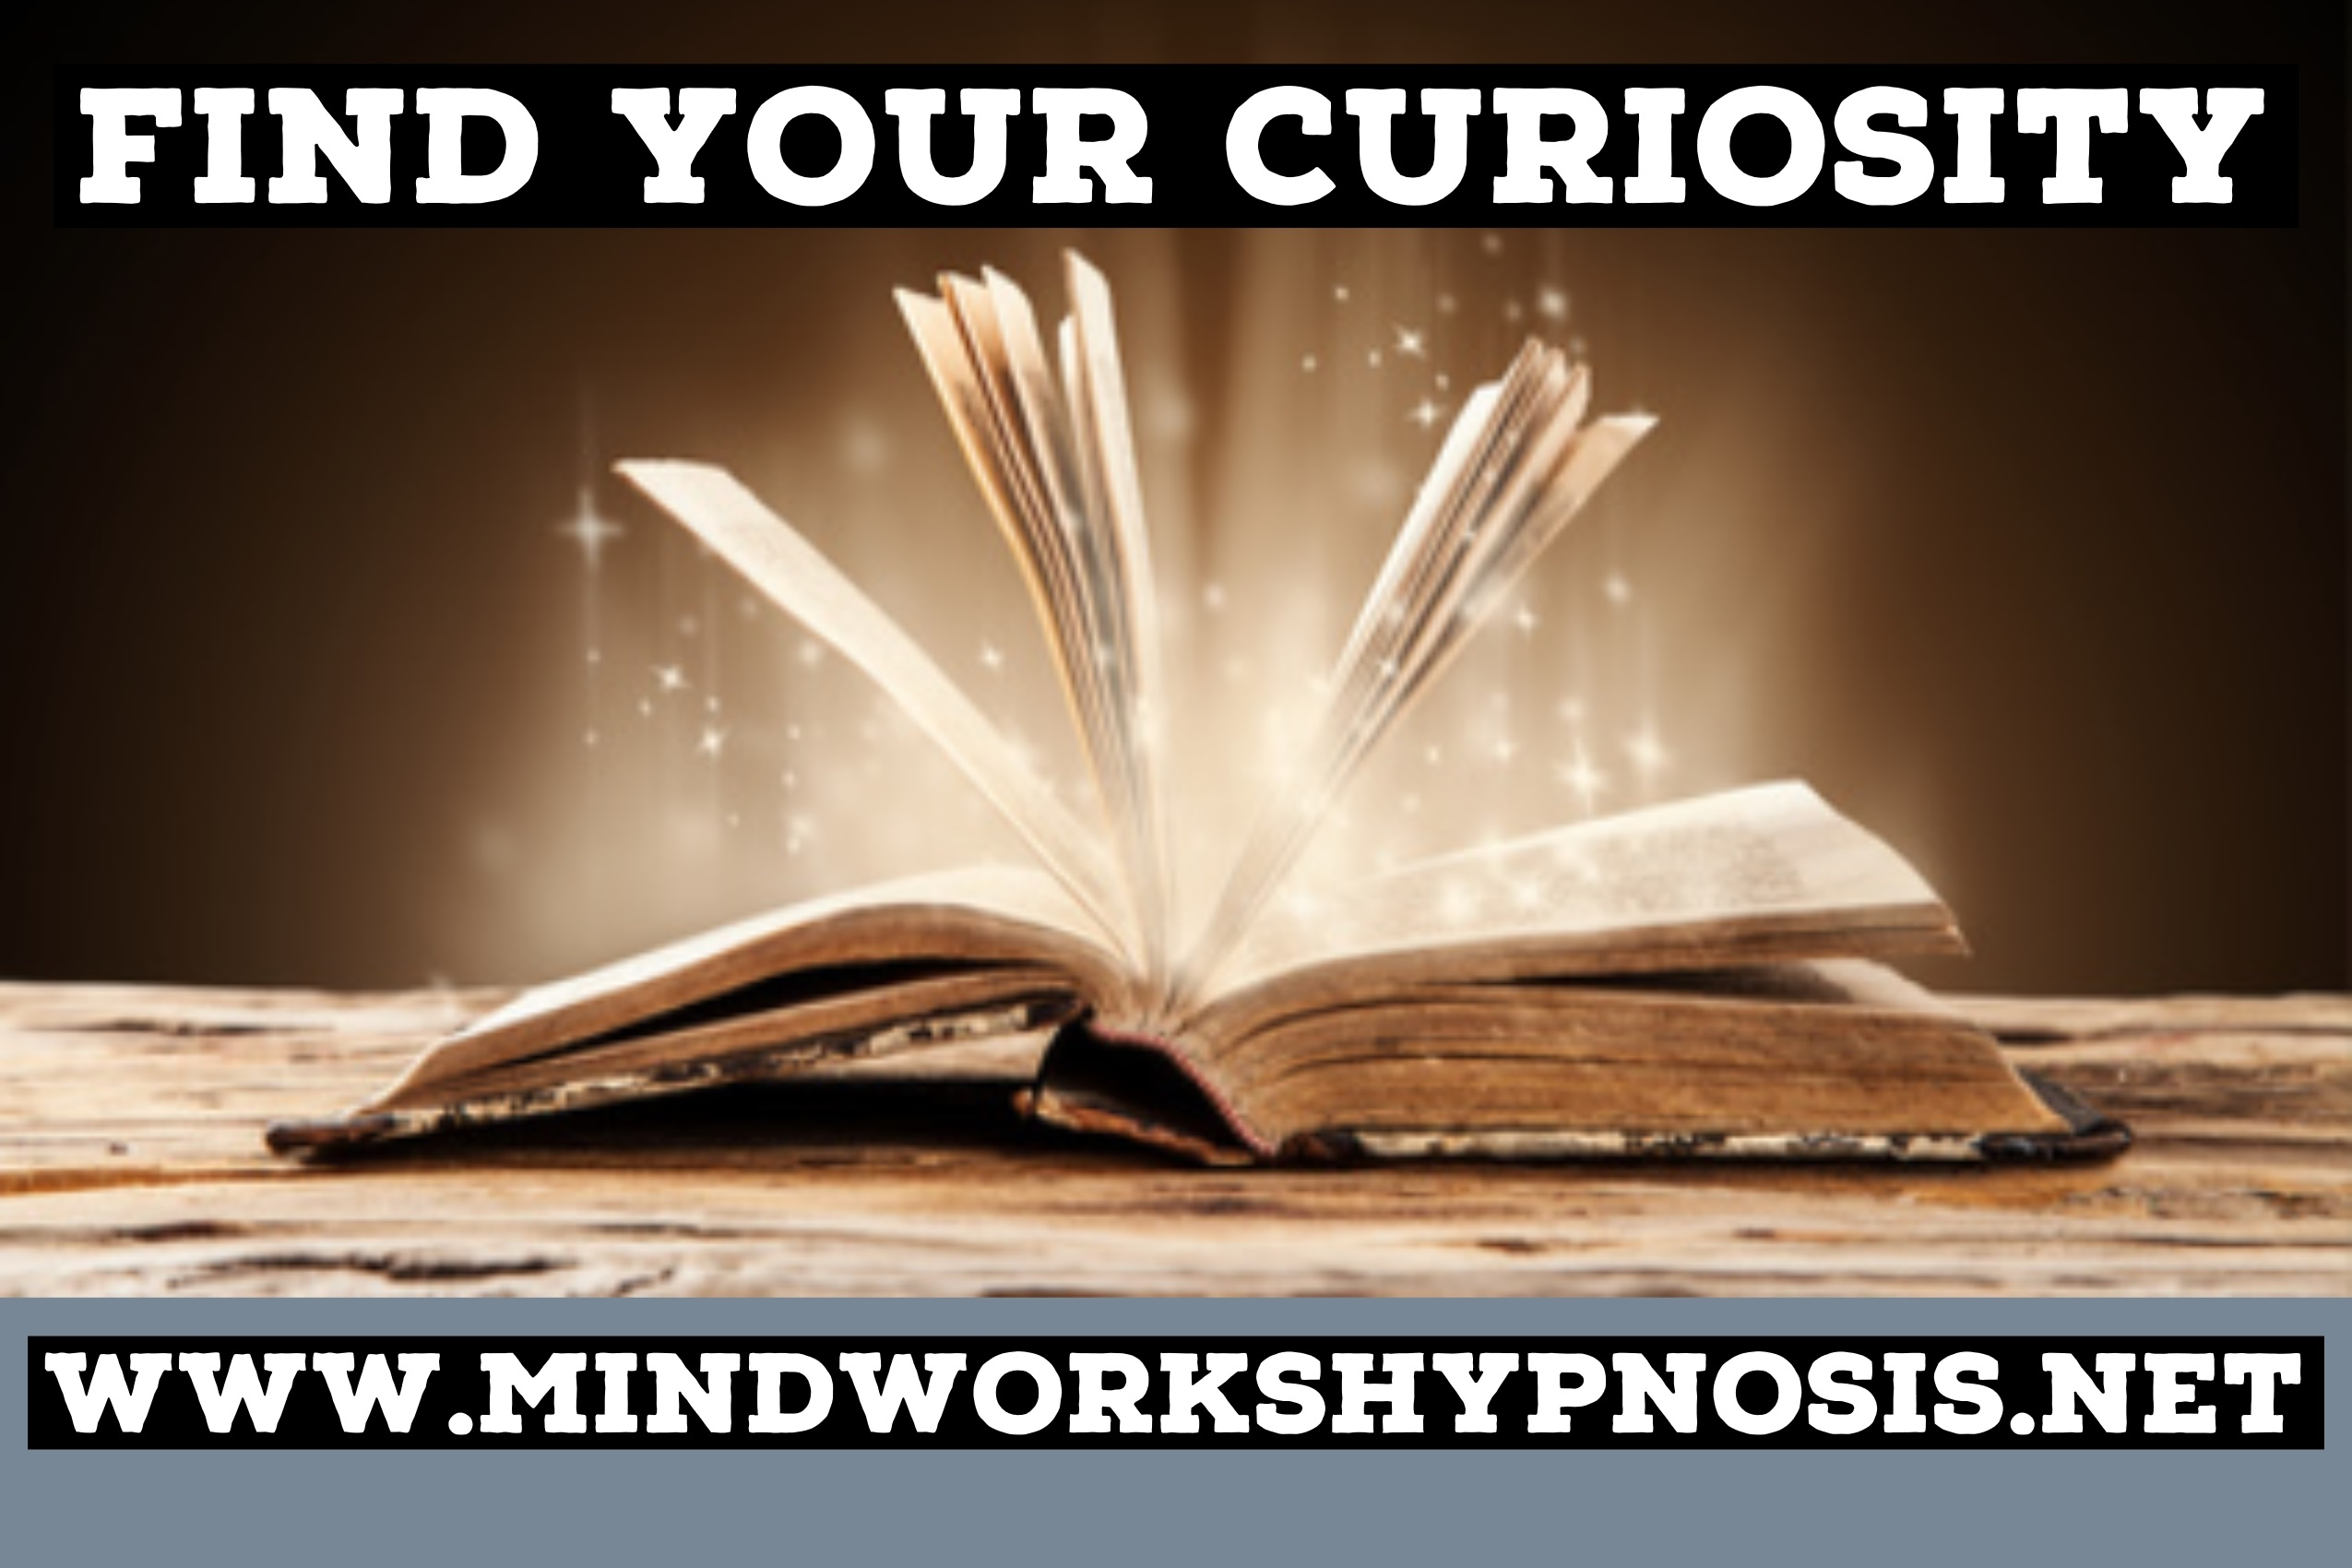 Find Your curiosity and best learning states of mind with Mindworks Hypnosis & NLP.